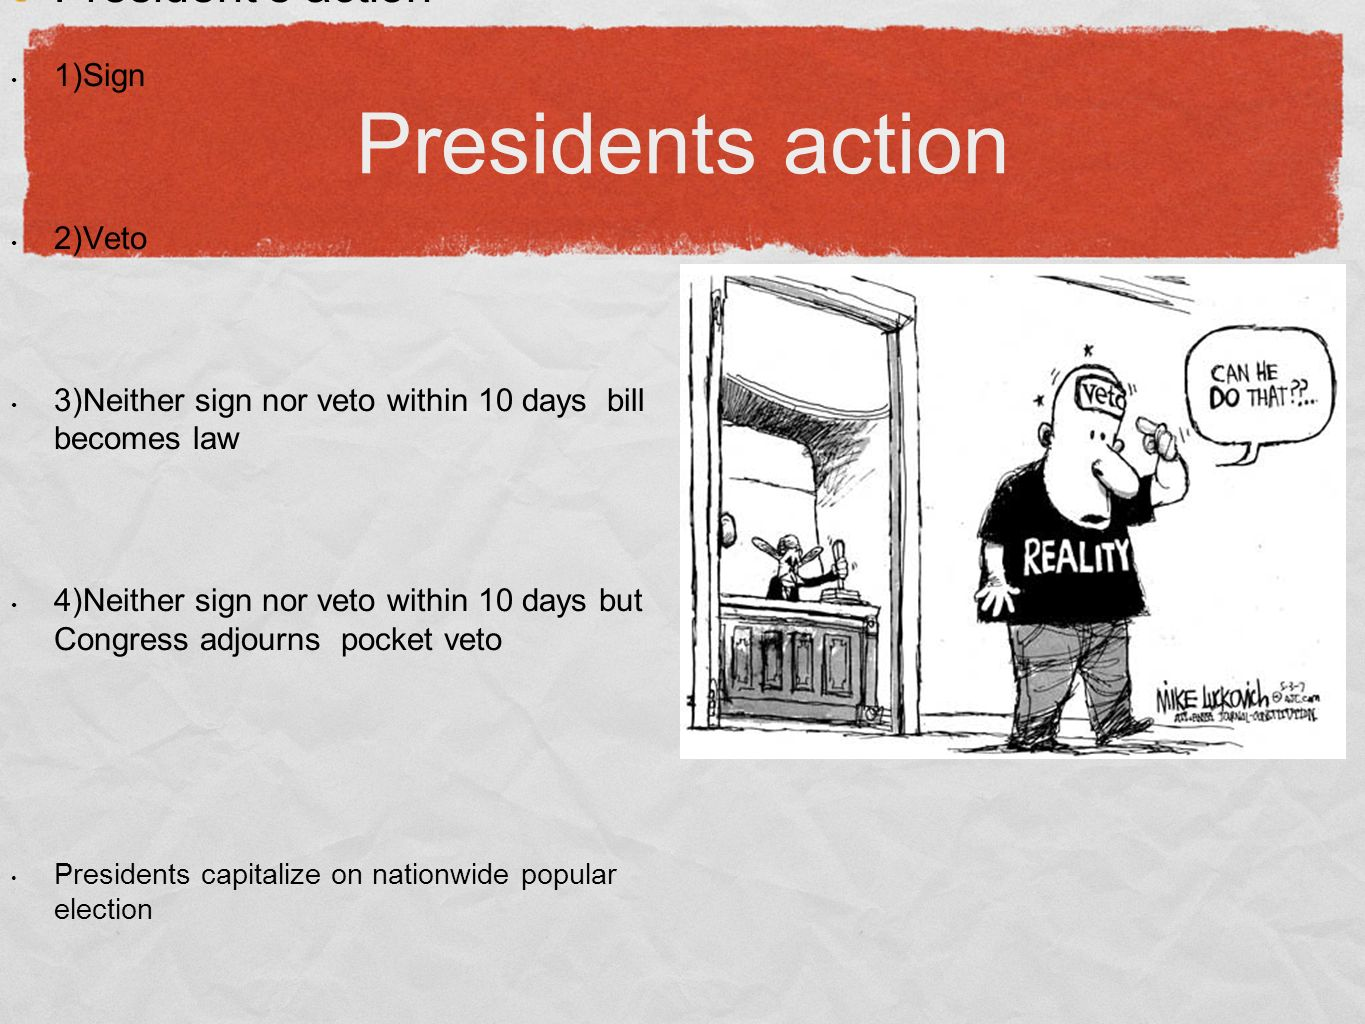 Presidents action President's action 1)Sign 2)Veto 3)Neither sign nor veto within 10 days bill becomes law 4)Neither sign nor veto within 10 days but Congress adjourns pocket veto Presidents capitalize on nationwide popular election Public expects president to be legislator-in-chief Hundreds of legislative liaison personnel work for executive branch